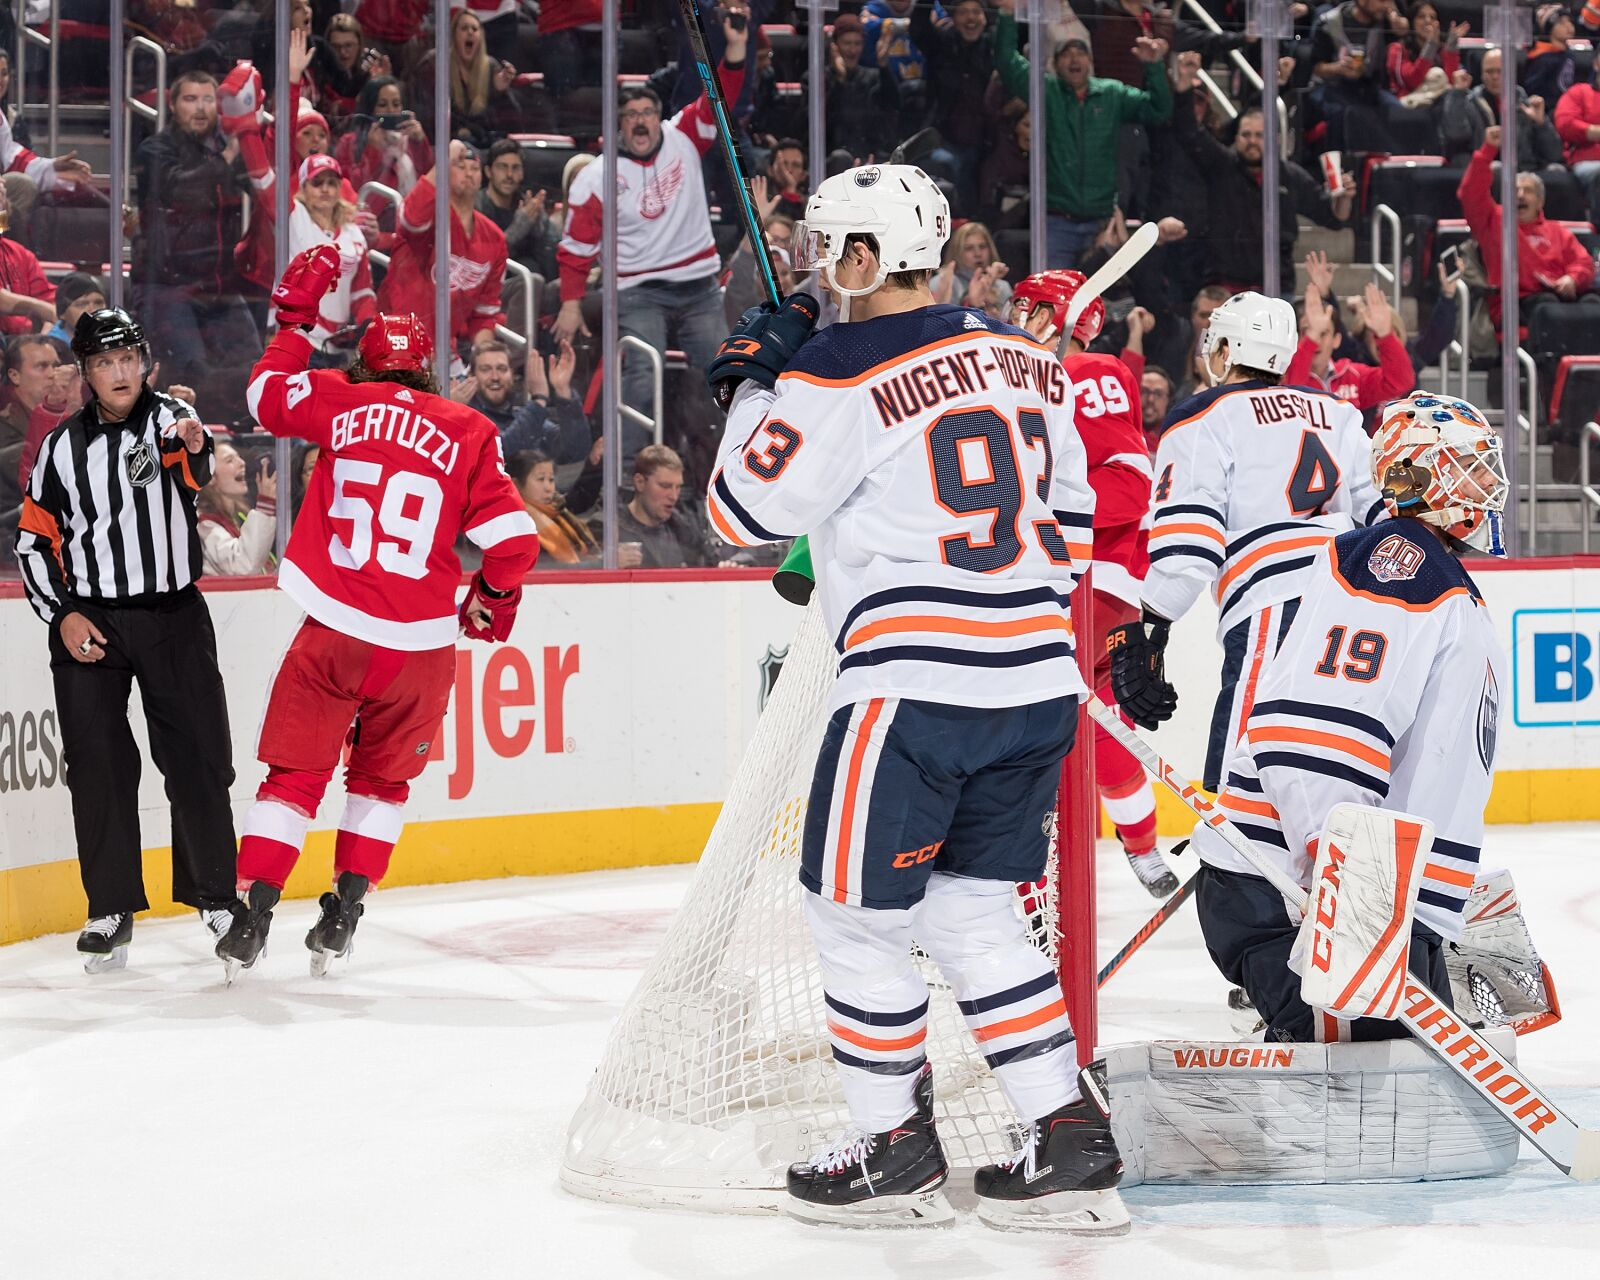 Detroit Red Wings The Streak Is Broken With A Loss To The